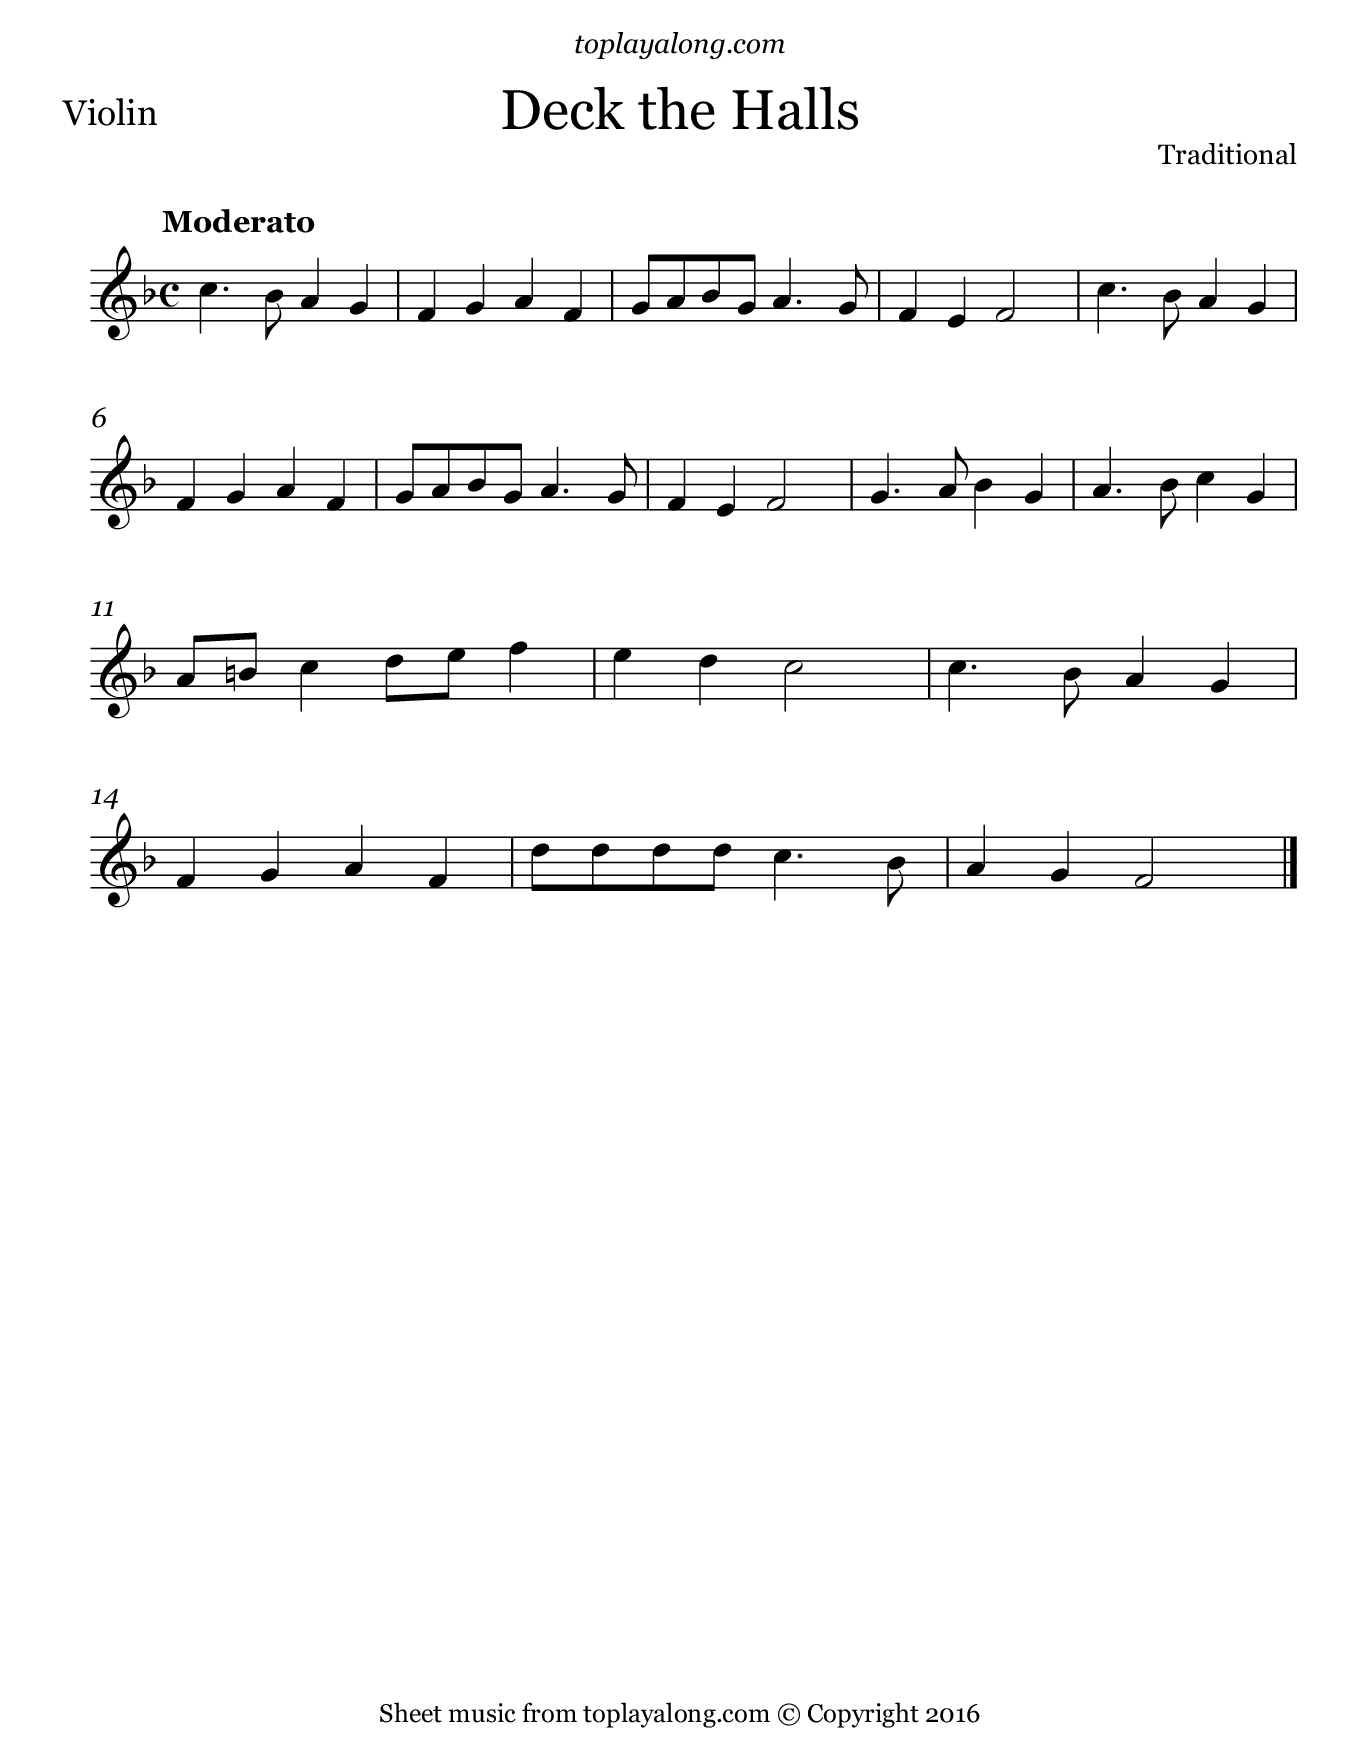 Deck the Halls. Sheet music for Violin, page 1.